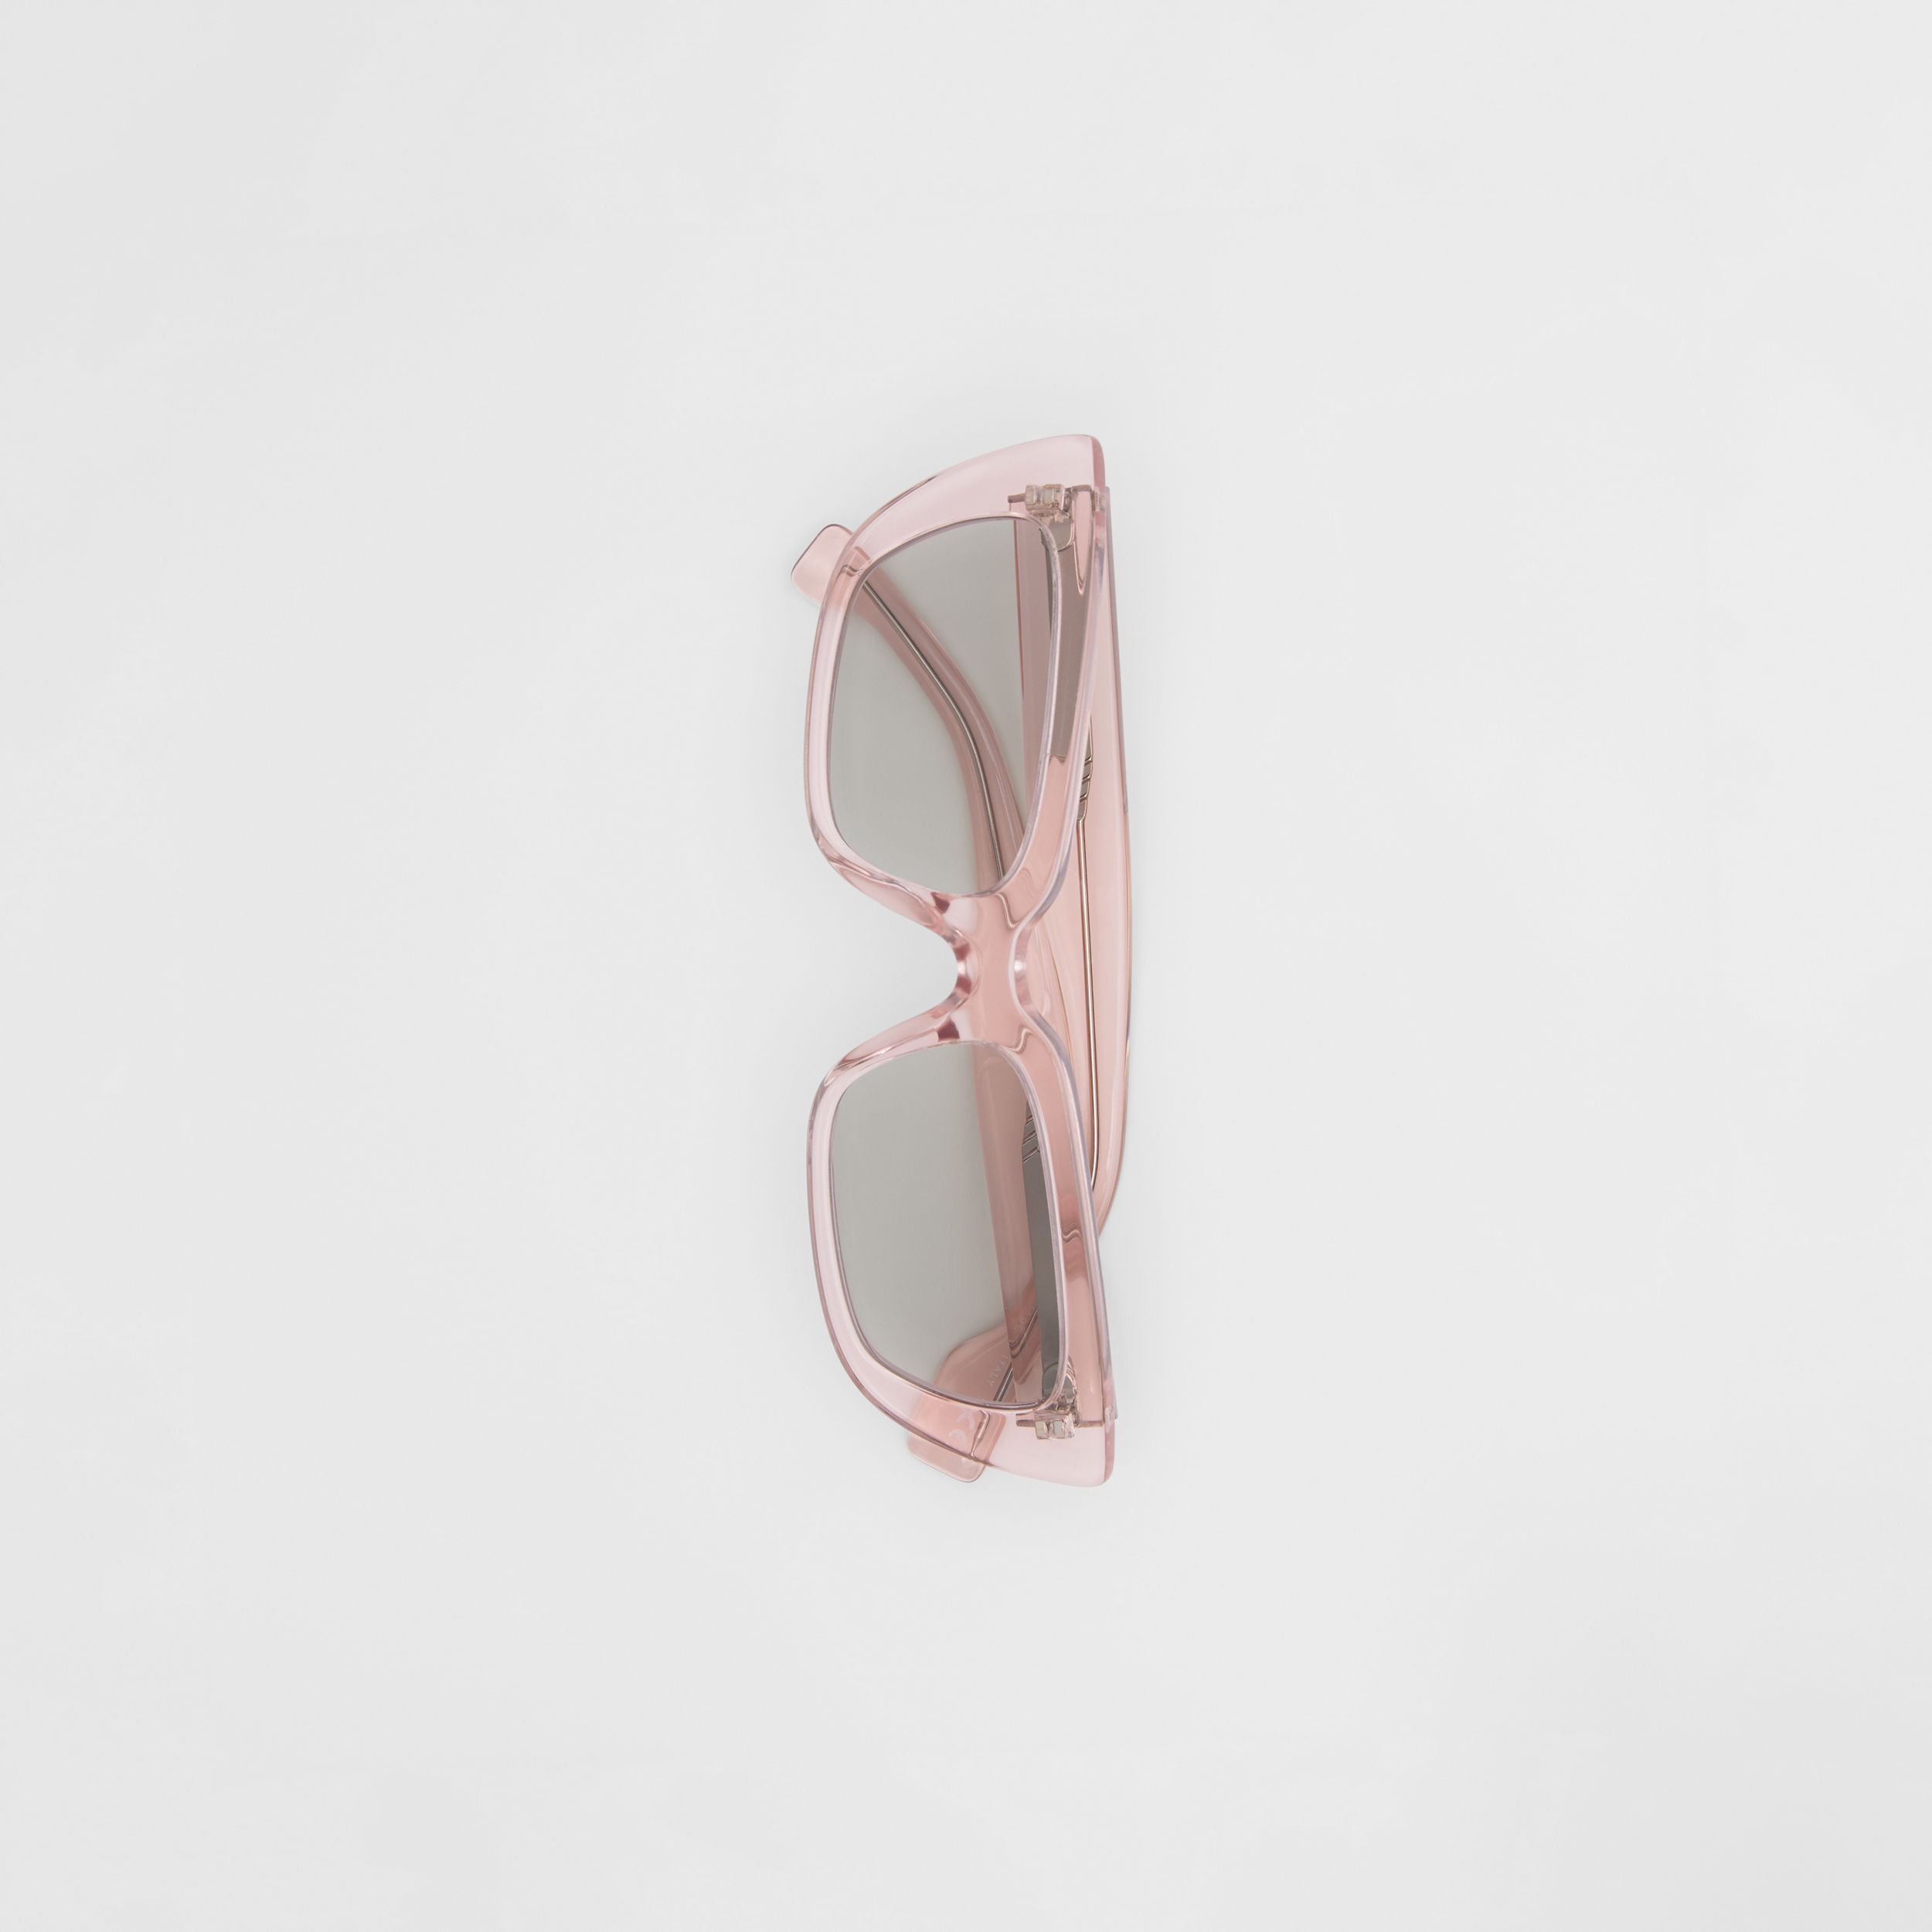 Bio-acetate Rectangular Frame Sunglasses in Light Pink - Women | Burberry Hong Kong S.A.R. - 4